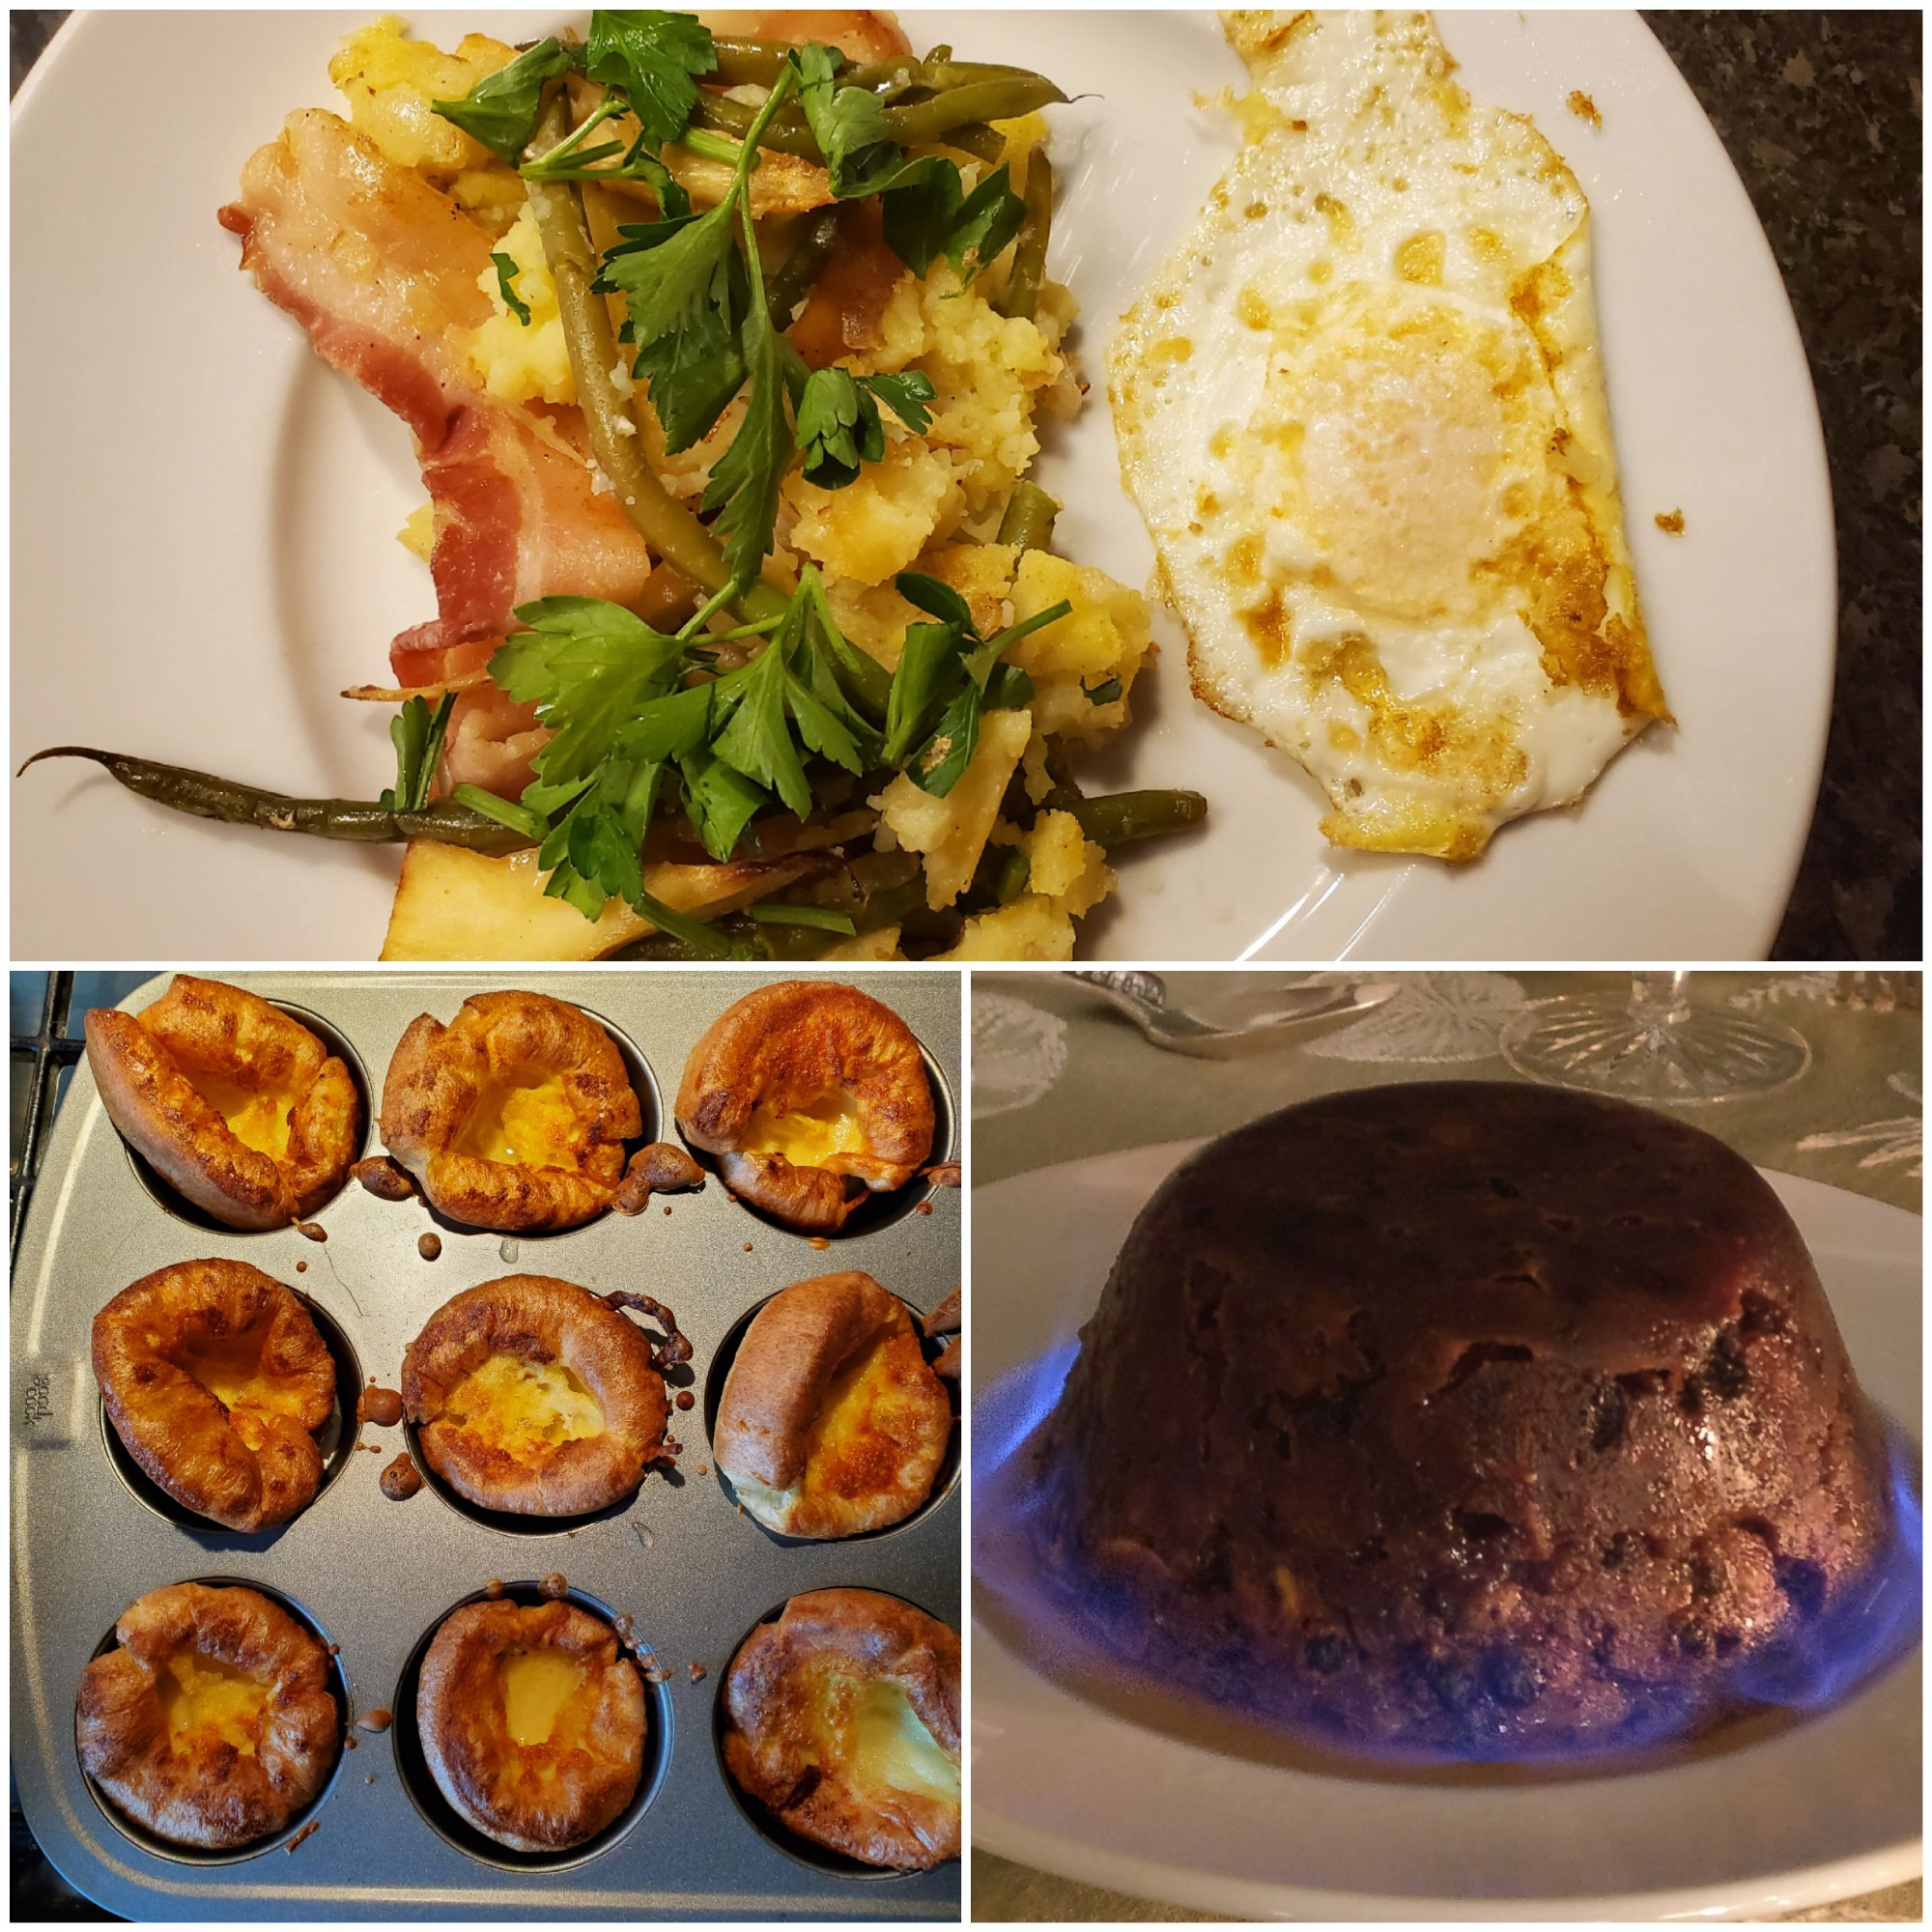 Top: Bubble and Squeak plated with a fried egg, Left: Yorkshire Puddings still hot in the pan, Right: Christmas Pudding